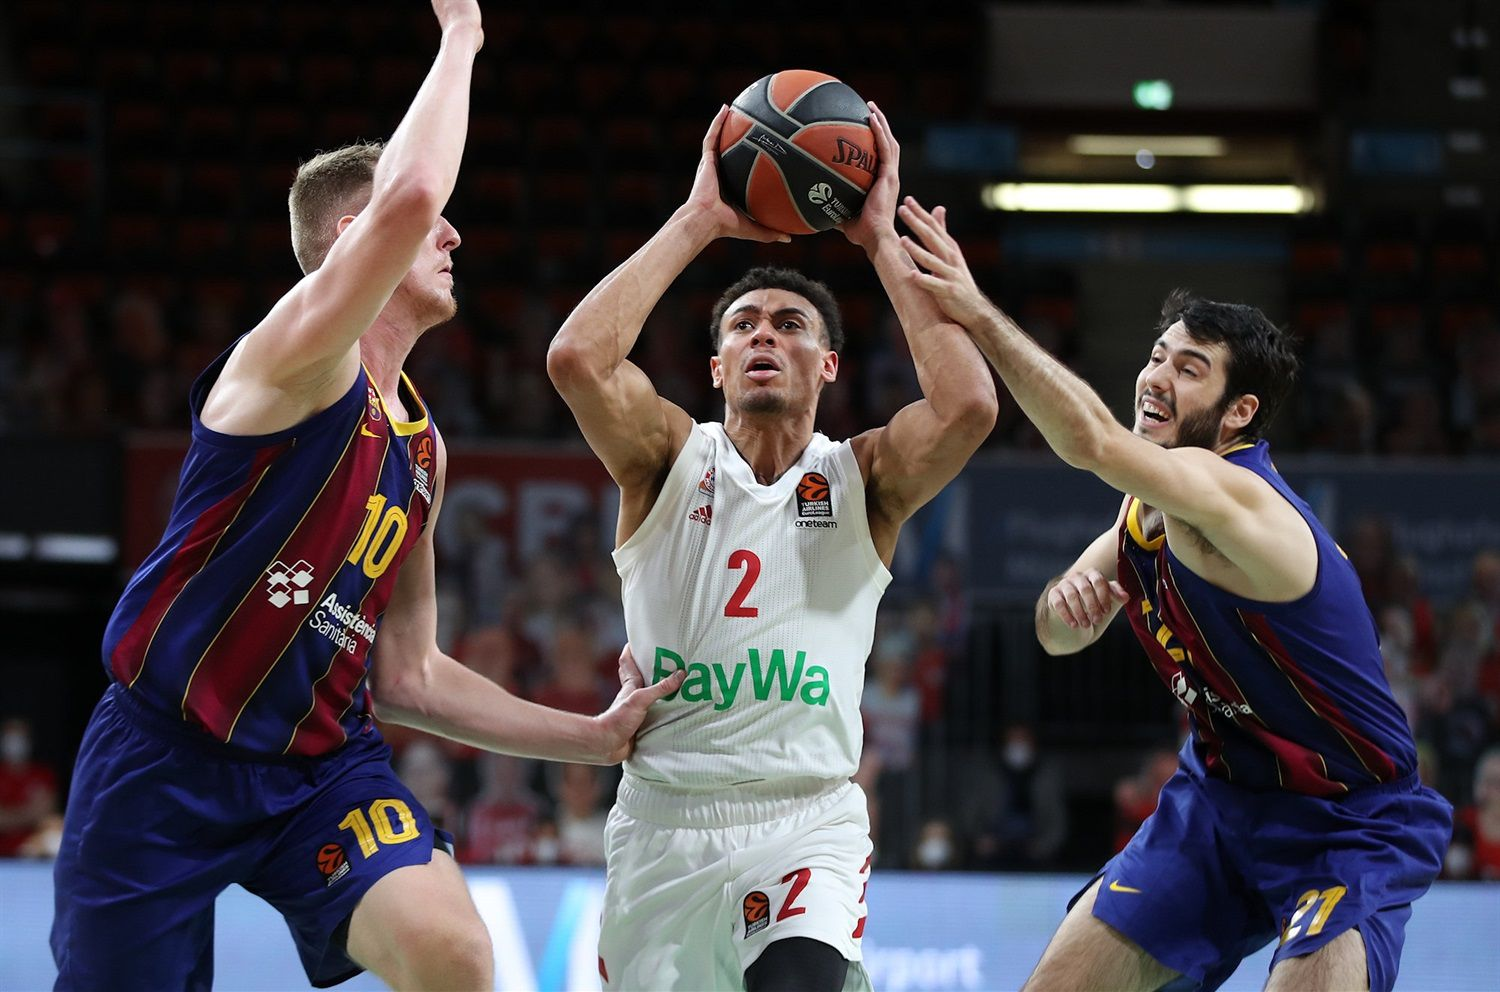 EuroLeague : le Bayern Munich remporte le choc face au Barça